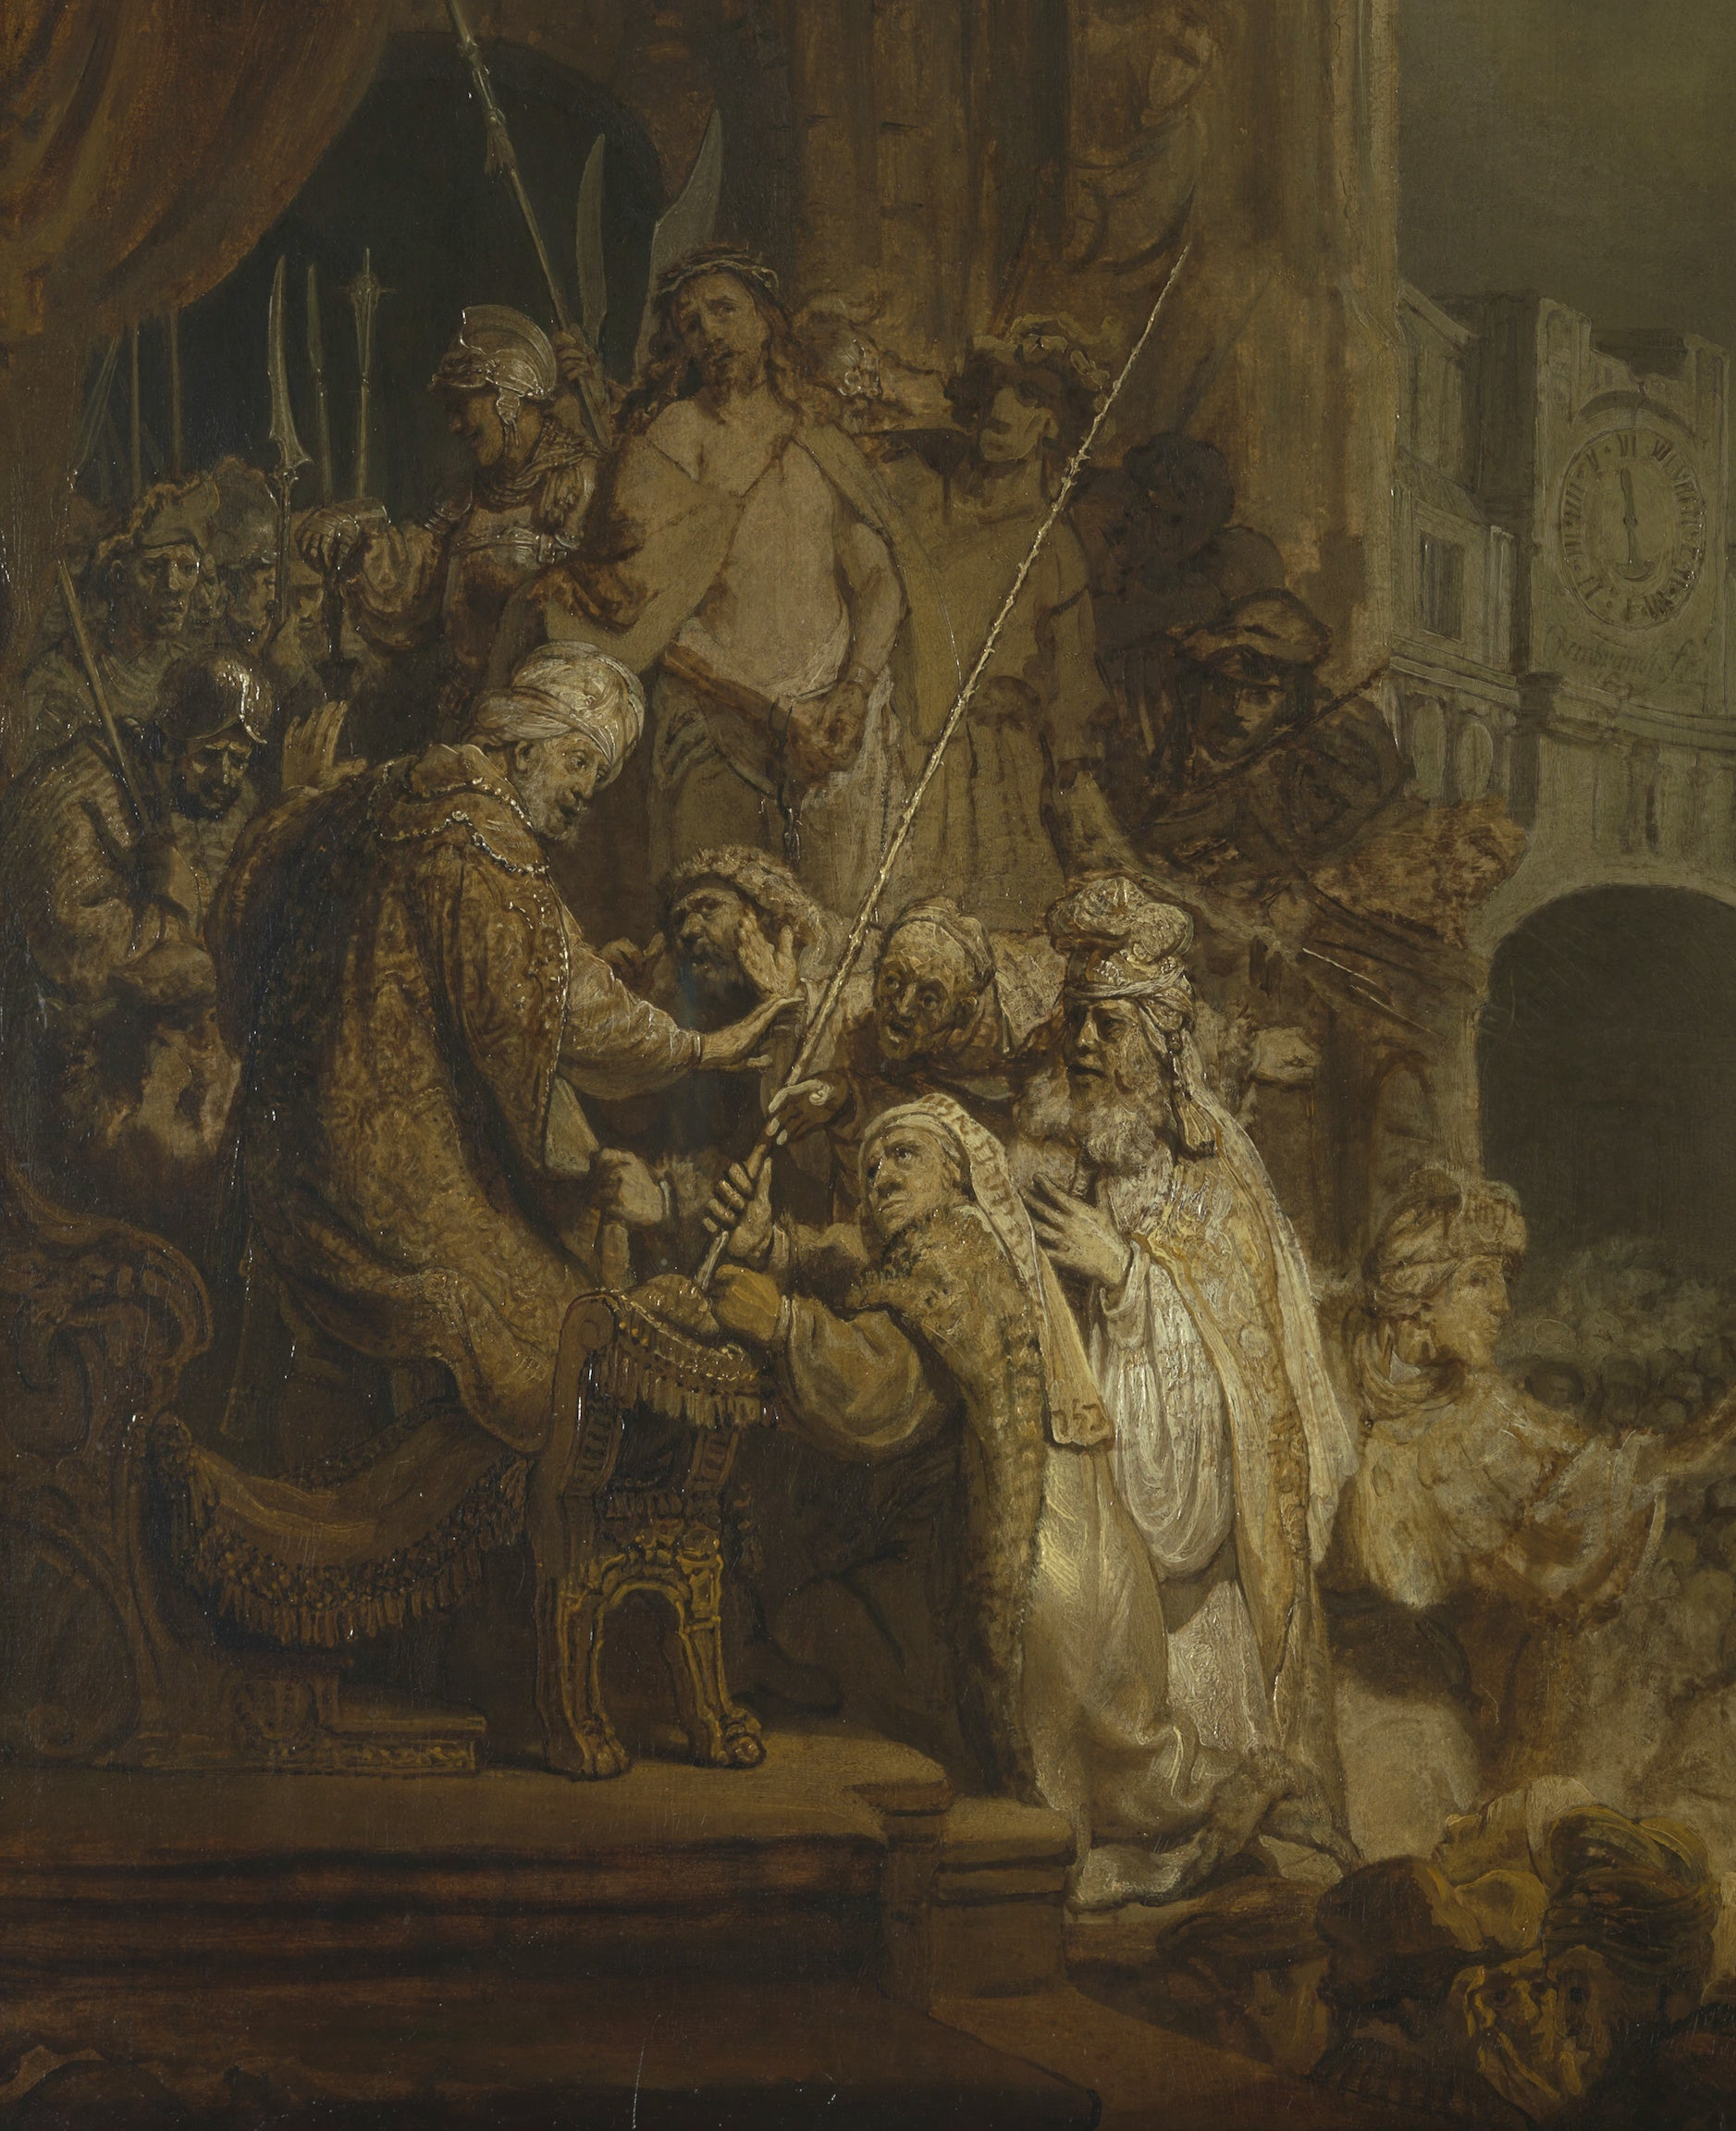 Detail from Ecce Homo, by Rembrandt, 1634